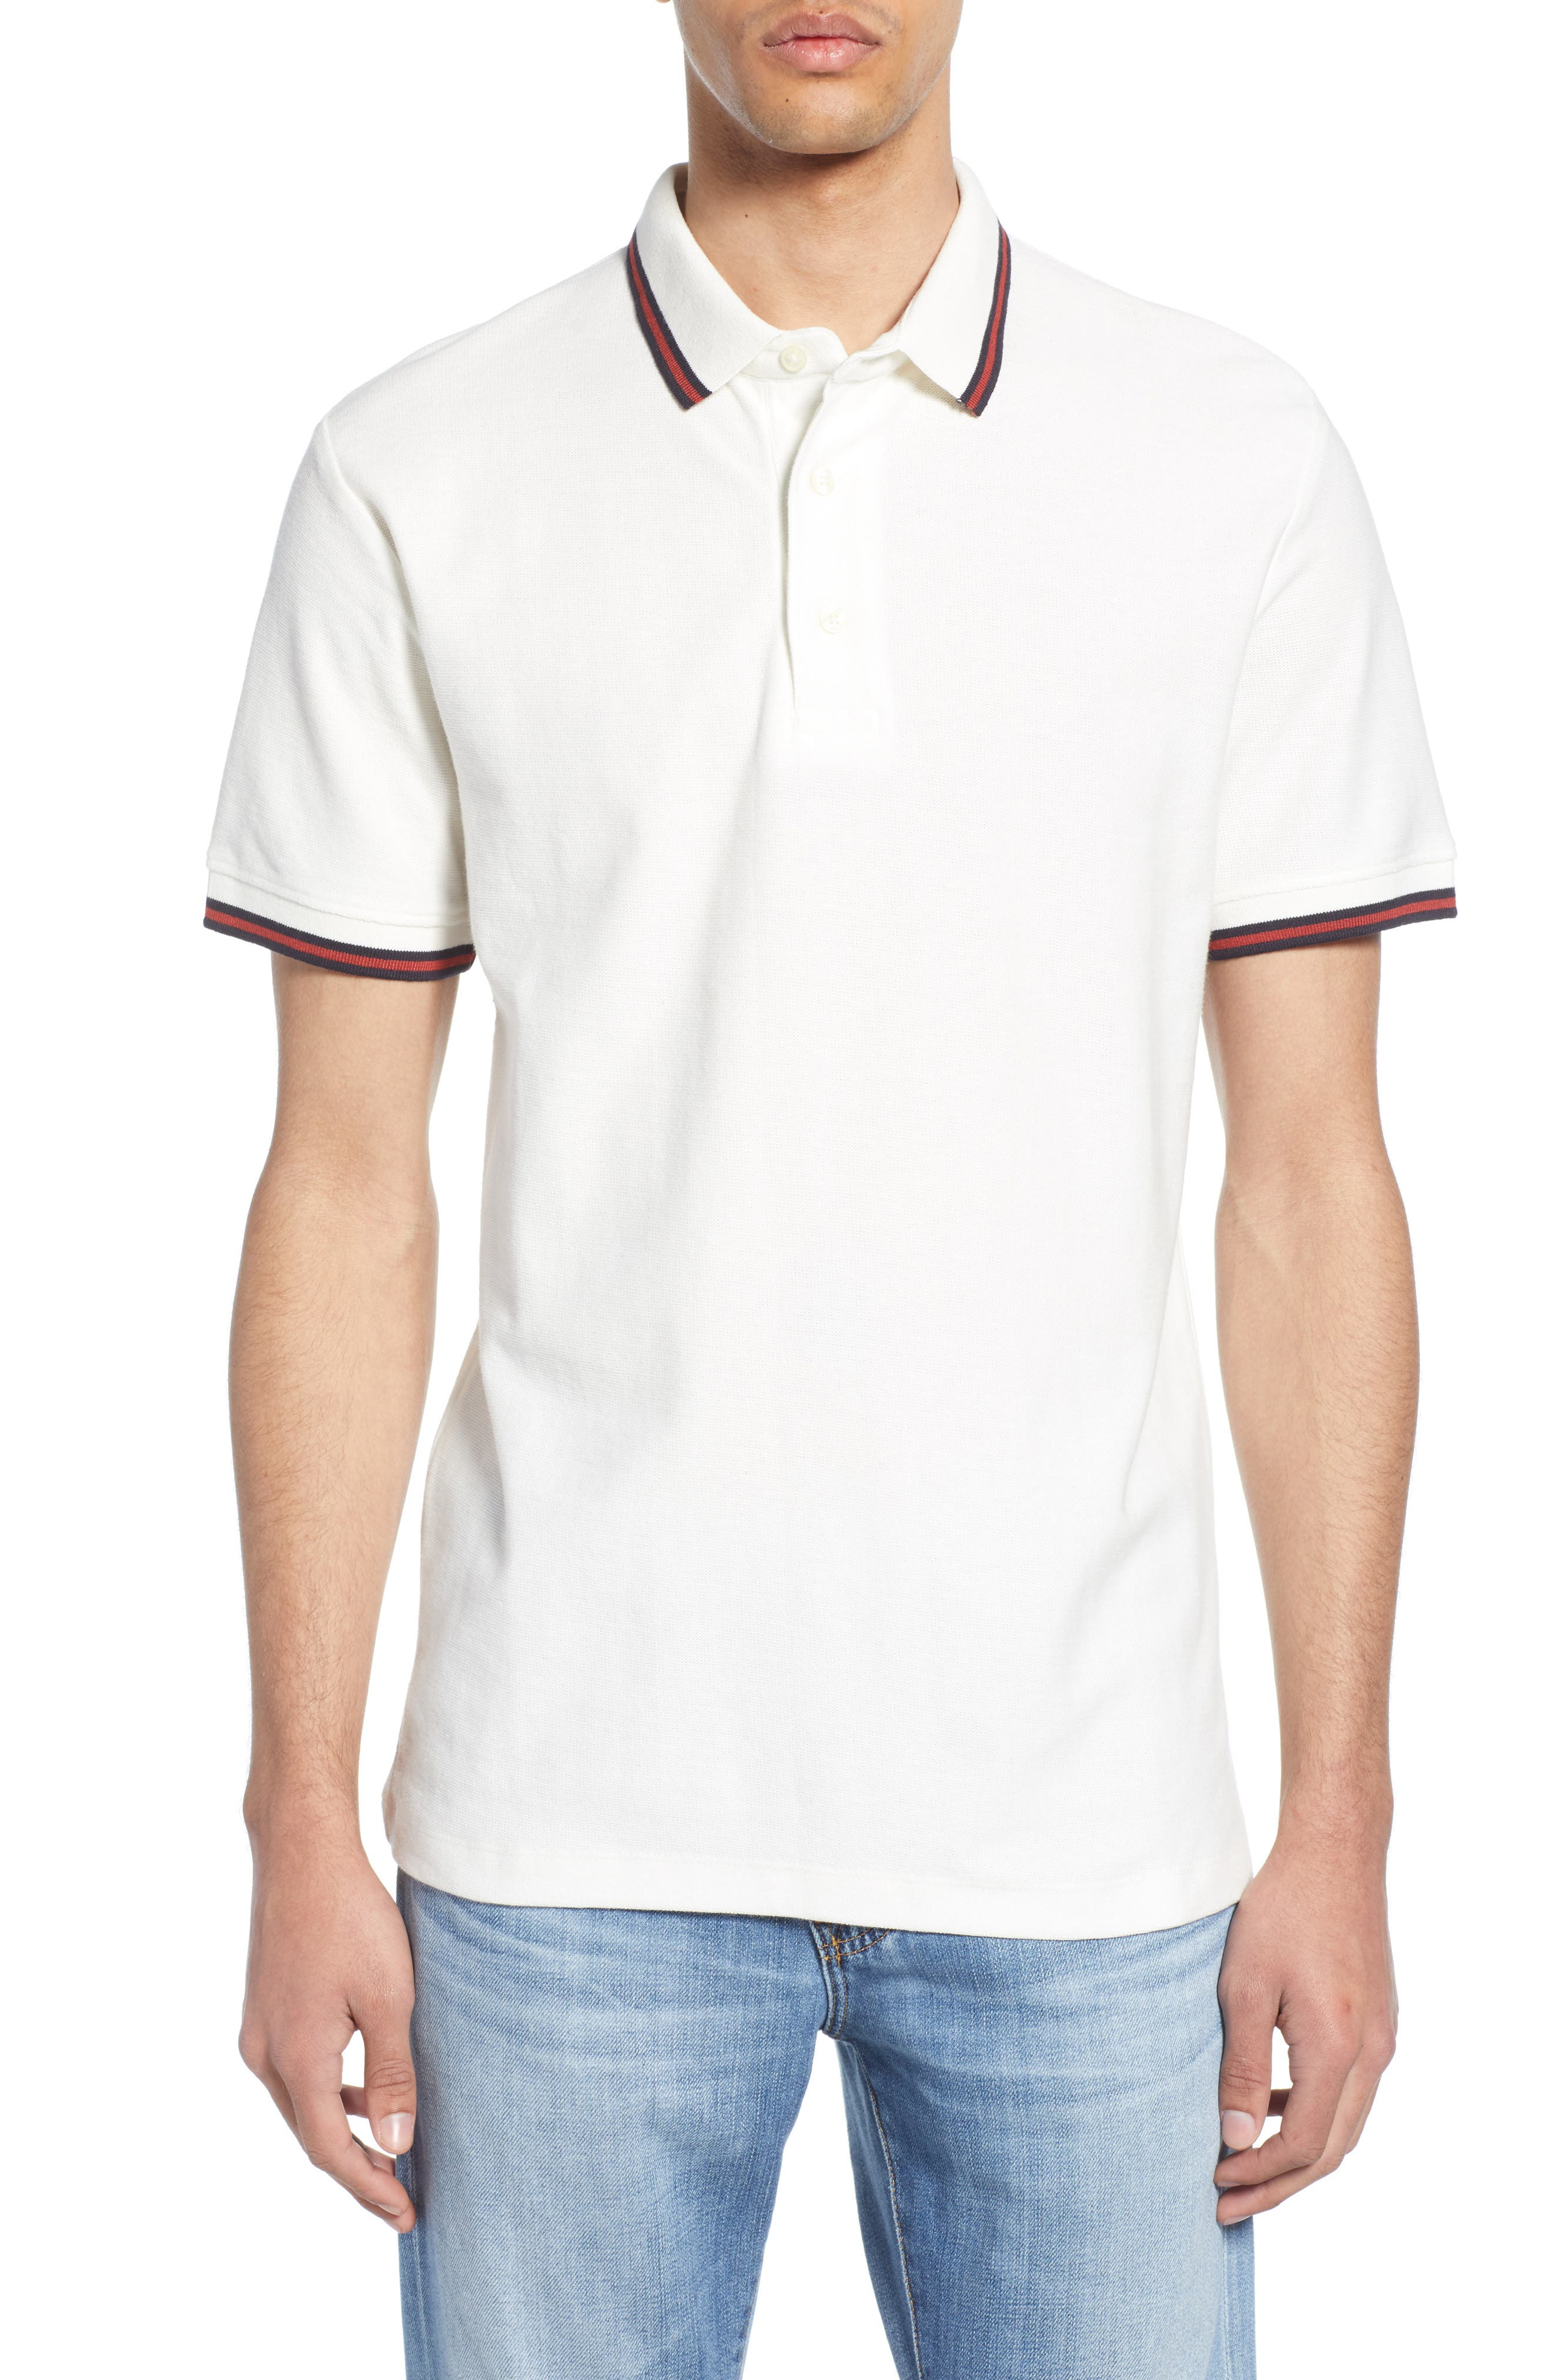 FRENCH CONNECTION Dobby Jersey Regular Fit Polo, Main, color, MILK BRICK RED